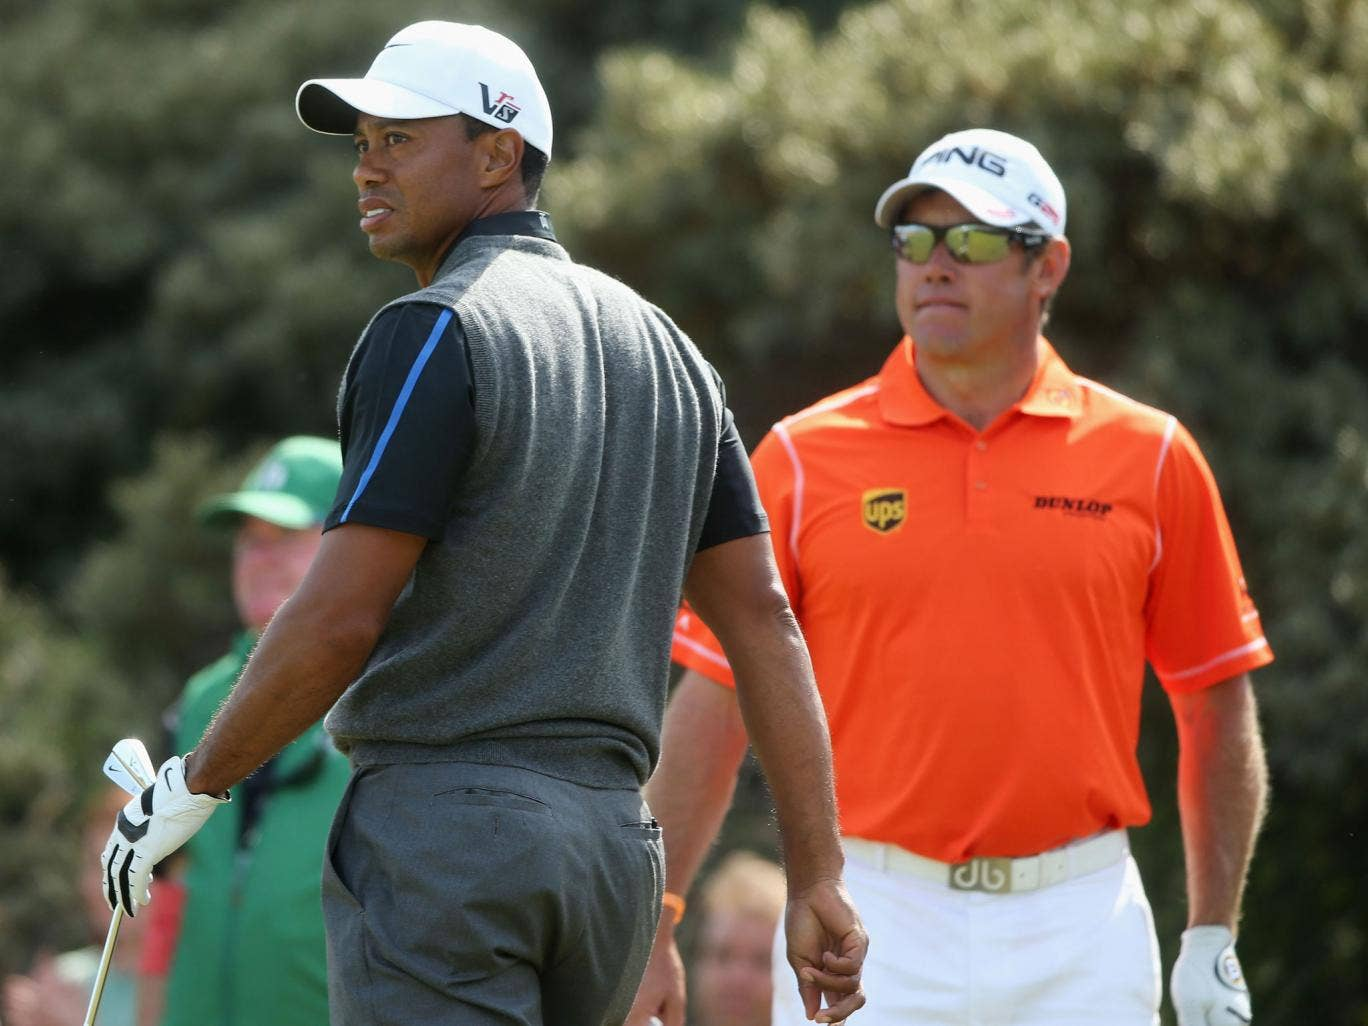 Crouching tiger: Lee Westwood ended the third round two shots ahead of world No 1 Tiger Woods